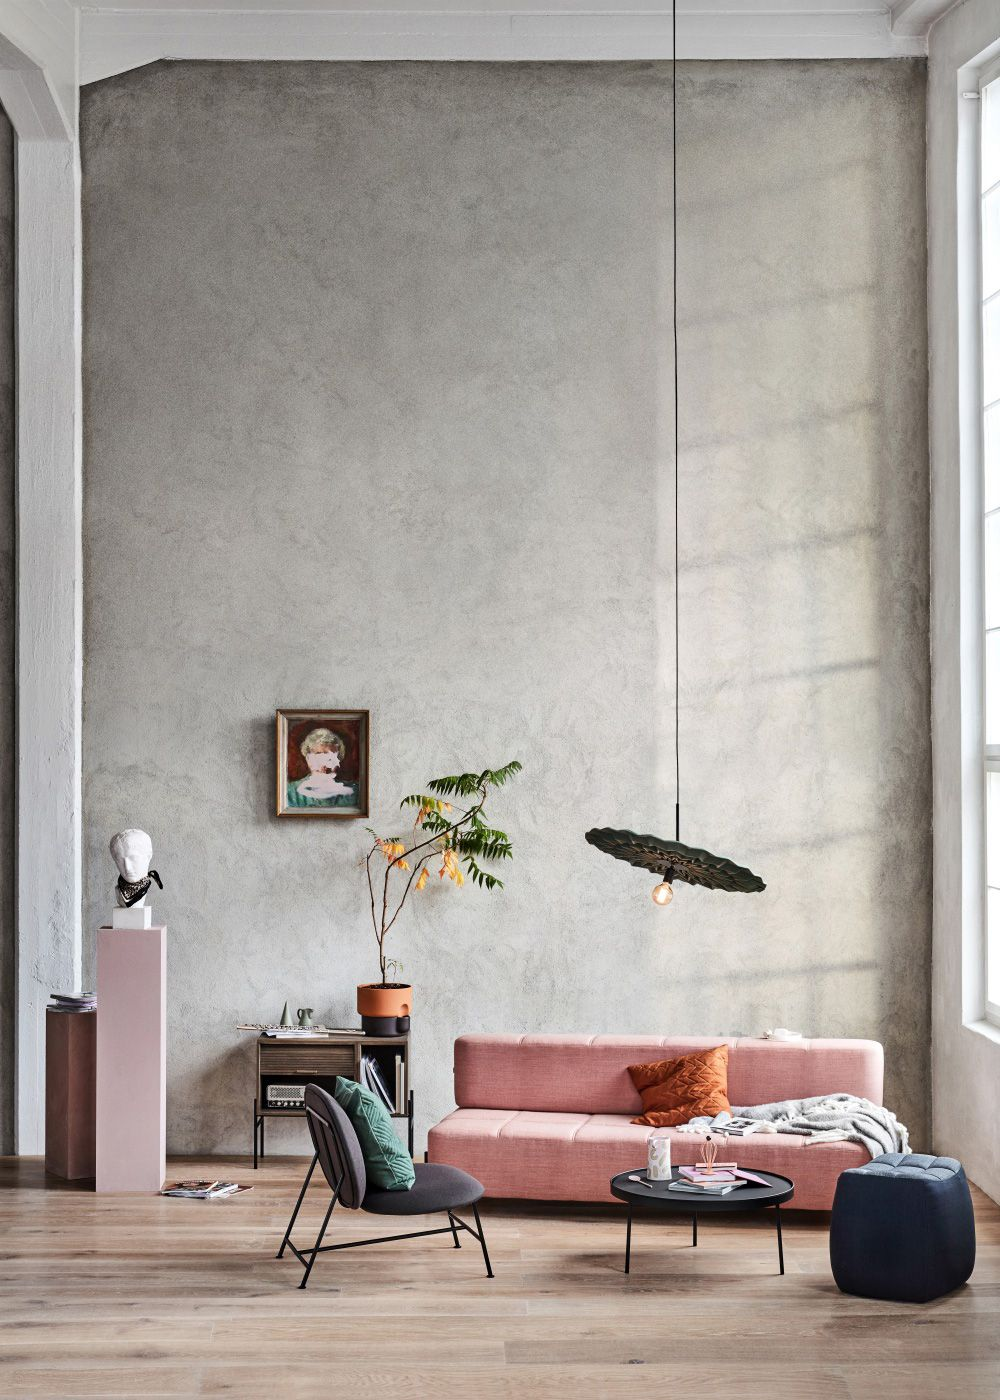 living room, wooden floor, grey seamless wall, low pendant, pink sofa, grey chair, black tray table, grey ottoman